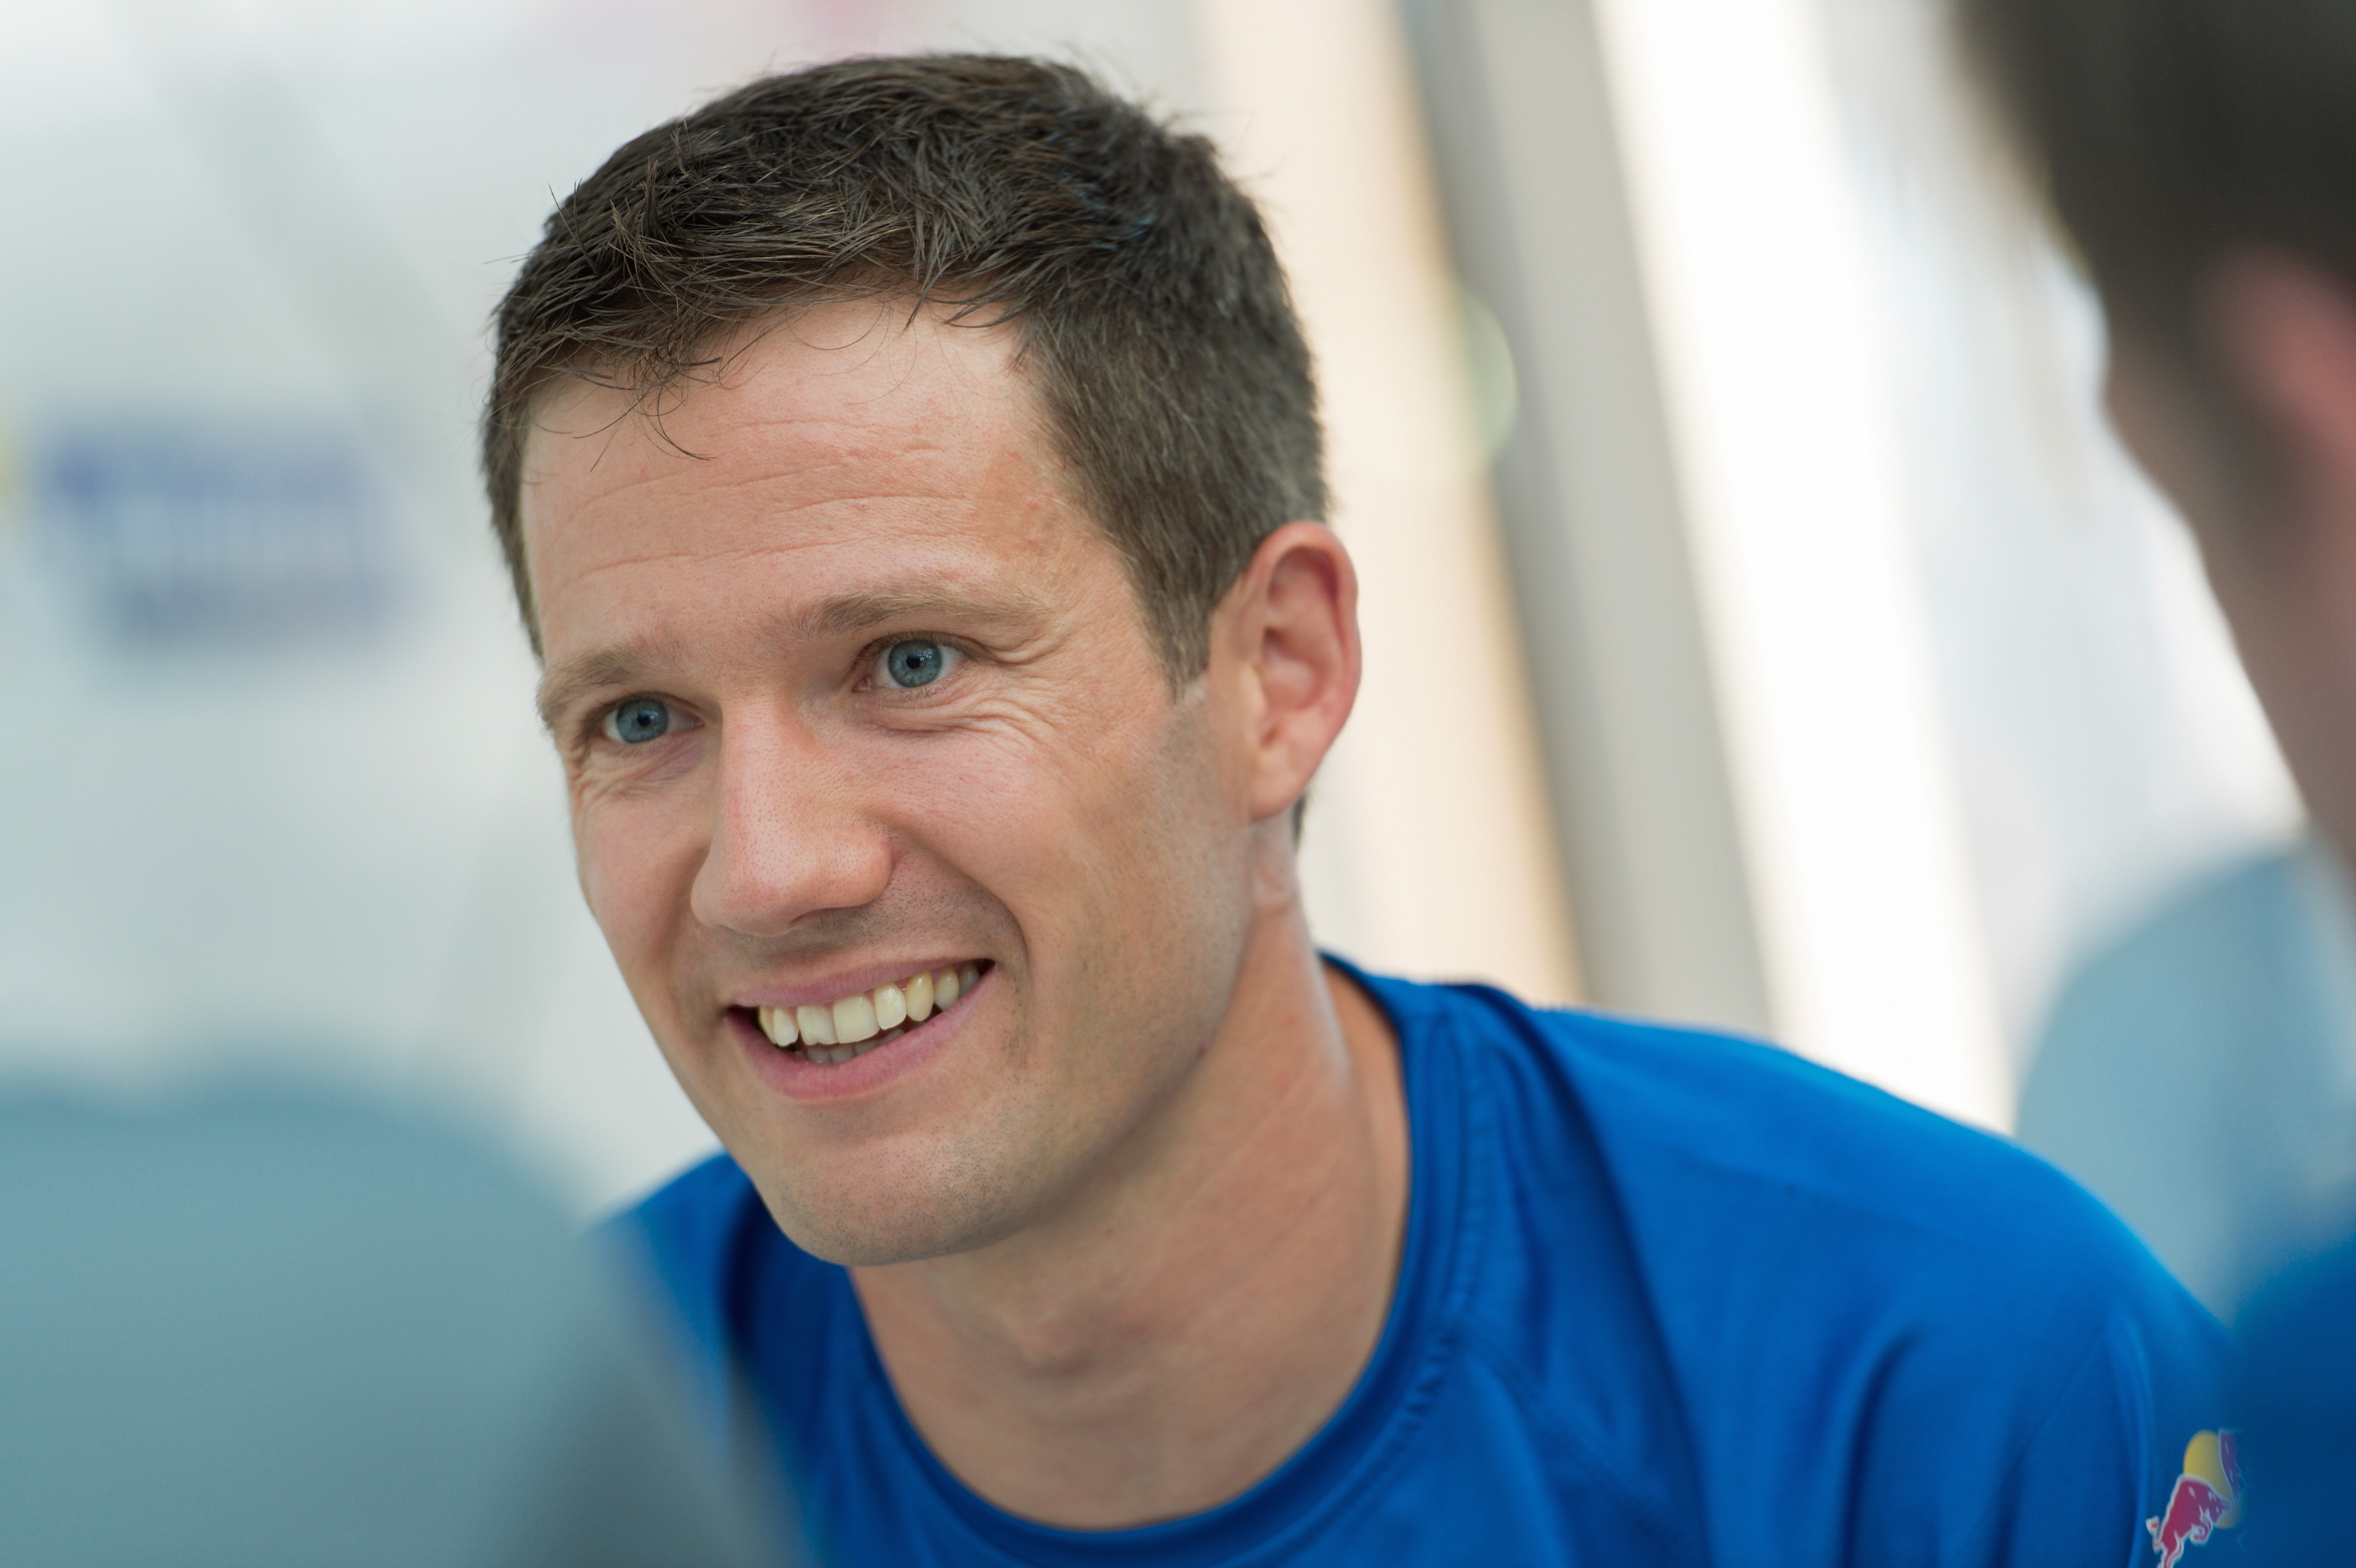 The 34-year old son of father (?) and mother(?) Sébastien Ogier in 2018 photo. Sébastien Ogier earned a  million dollar salary - leaving the net worth at 0.8 million in 2018